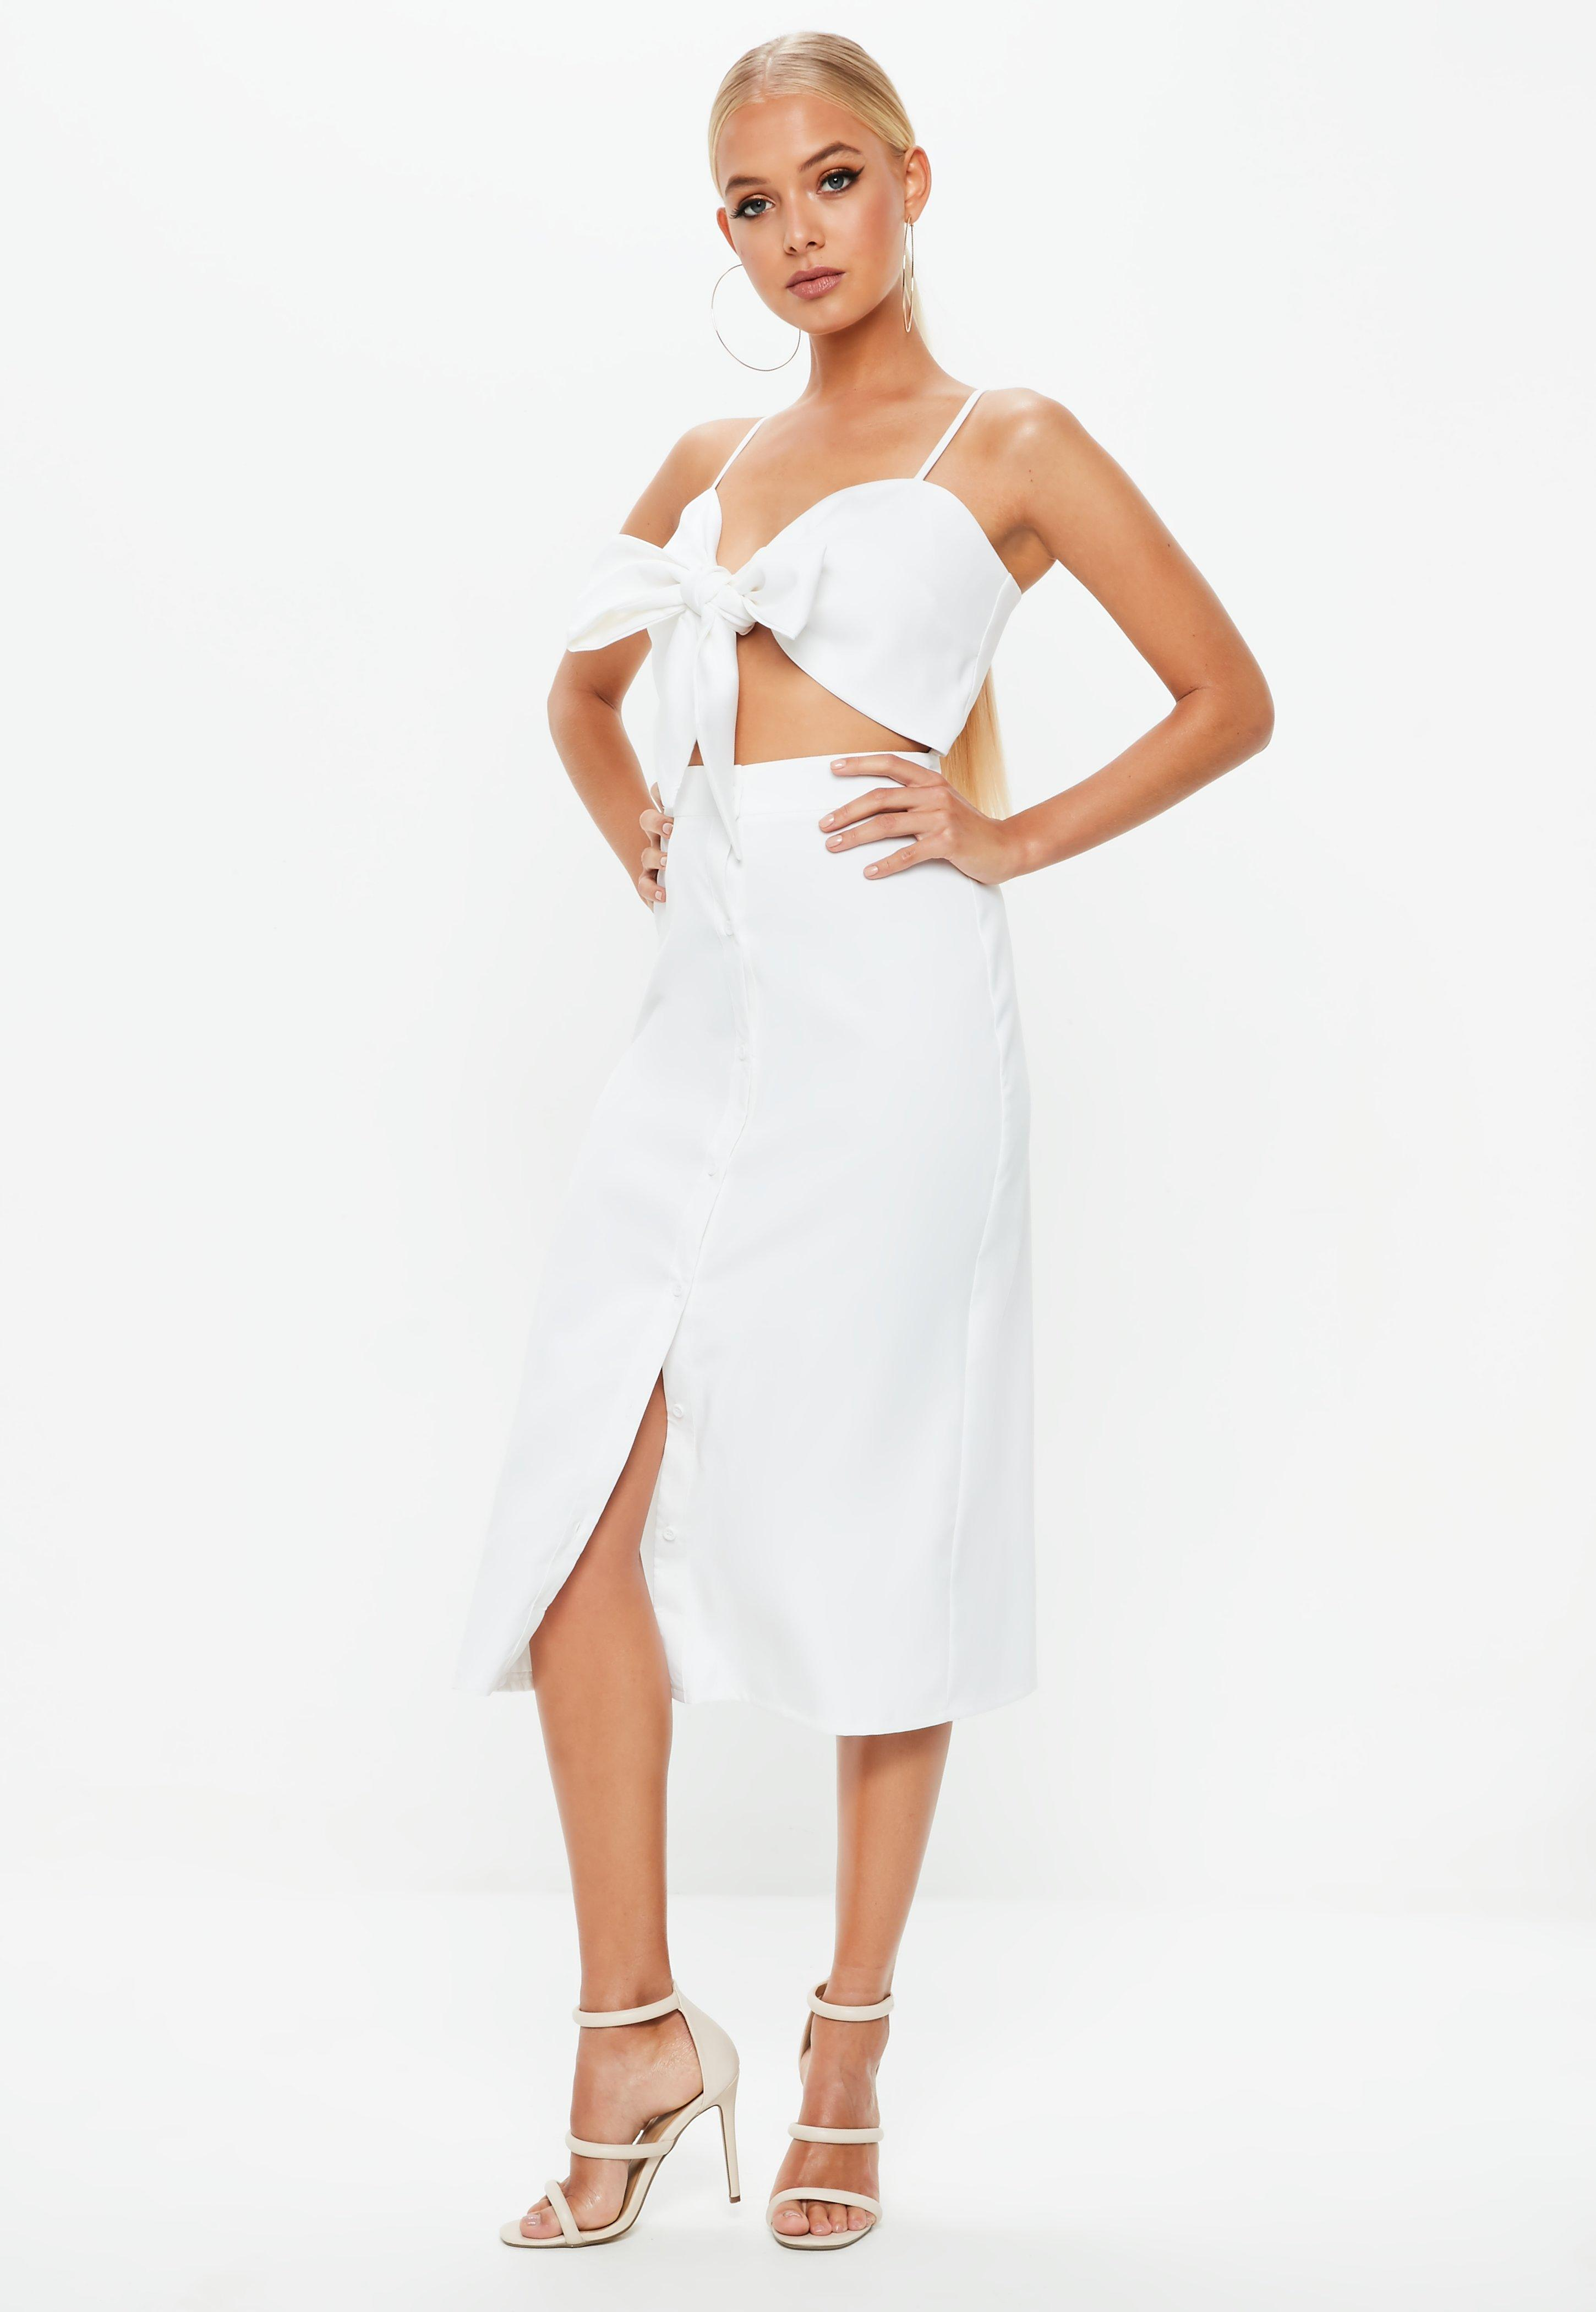 407aa0783bc3 Missguided - White Tie Front Button Down Strappy Midi Dress - Lyst. View  fullscreen